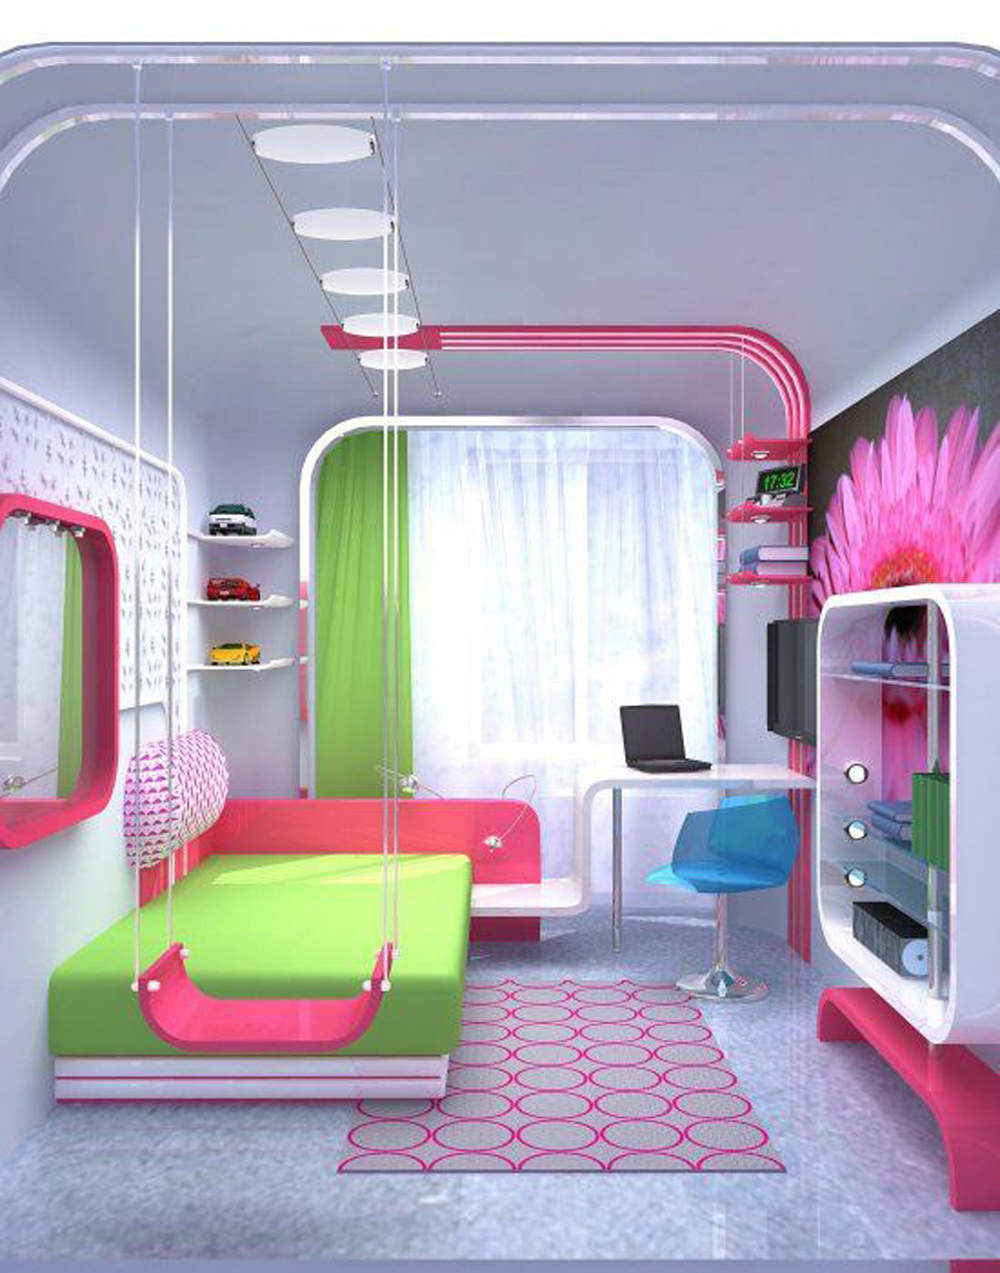 Stylish colorful bedrooms for girls allarchitecturedesigns for Girl bedrooms ideas